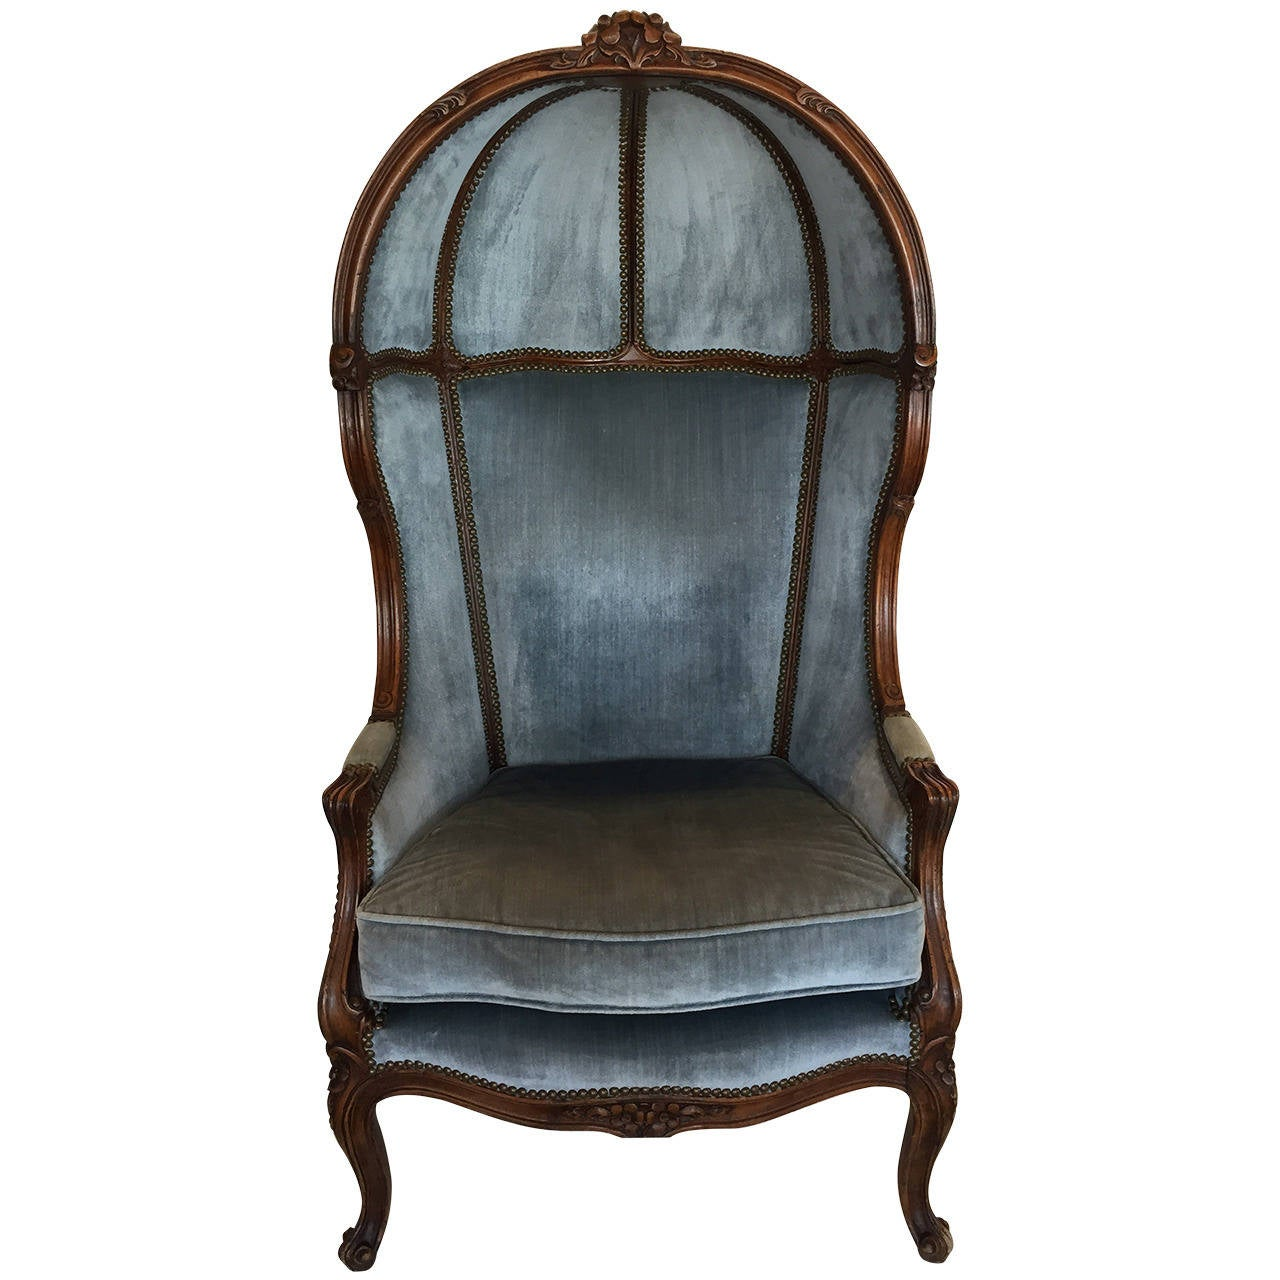 Vintage Porter S Chair For Sale At 1stdibs